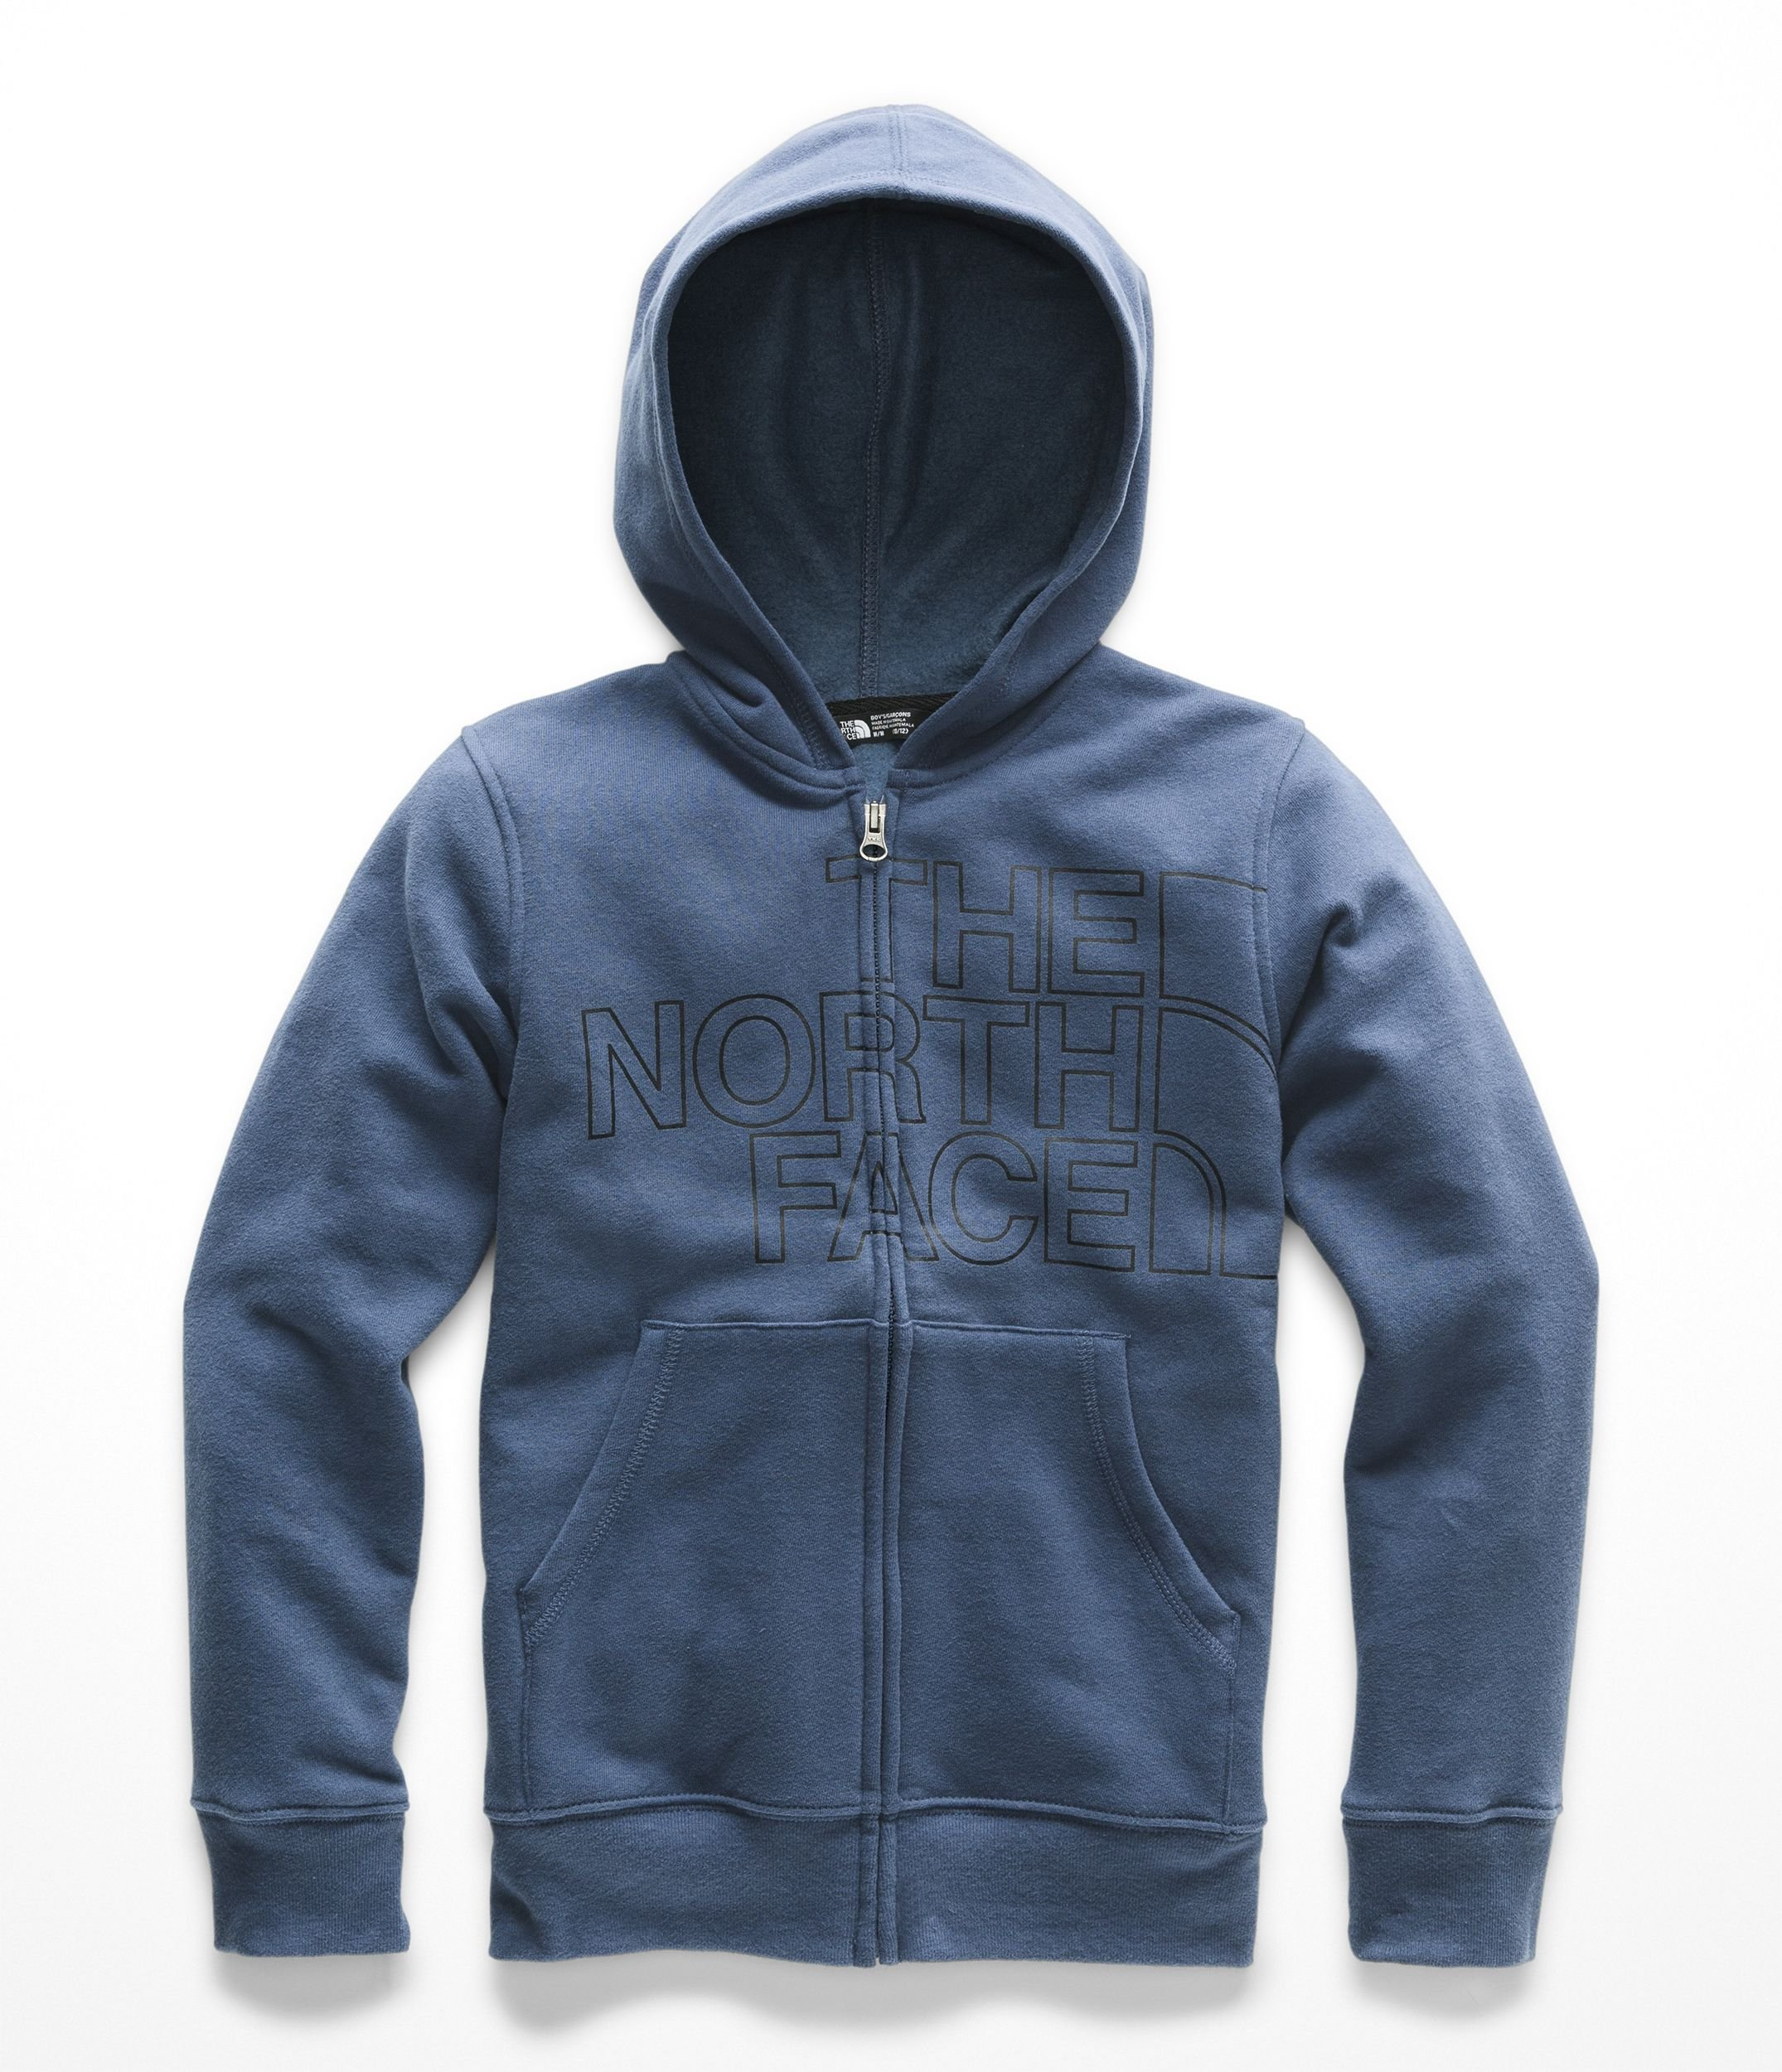 The North Face Boys Logowear Full Zip Hoodie - Shady Blue - L by The North Face (Image #1)